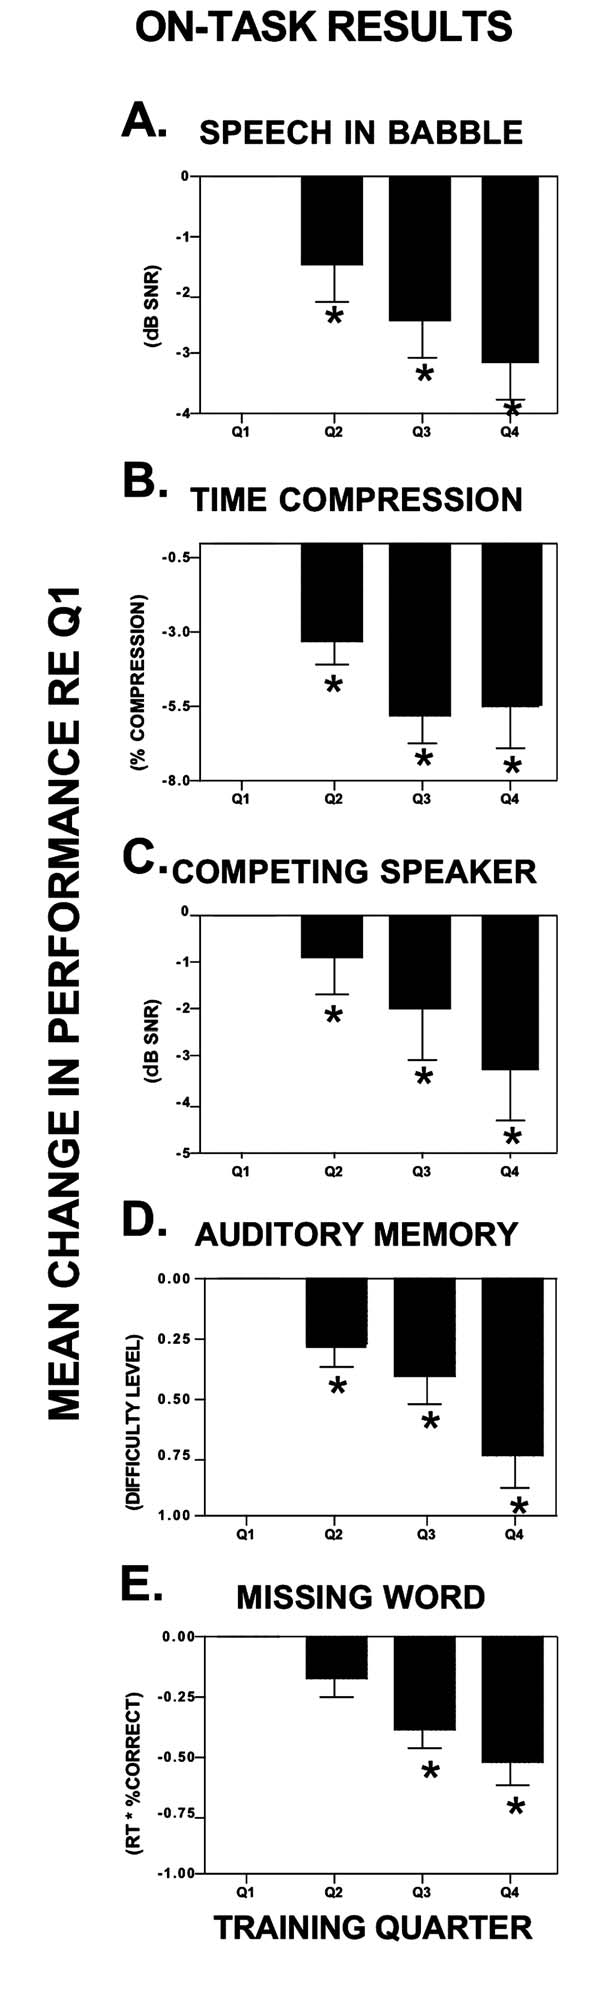 Development of Listening and Communication Enhancement (LACE TM )/Sweetow and Henderson Sabes (6%) were significantly different from the baseline quarter, and Q4 was significantly different than Q2